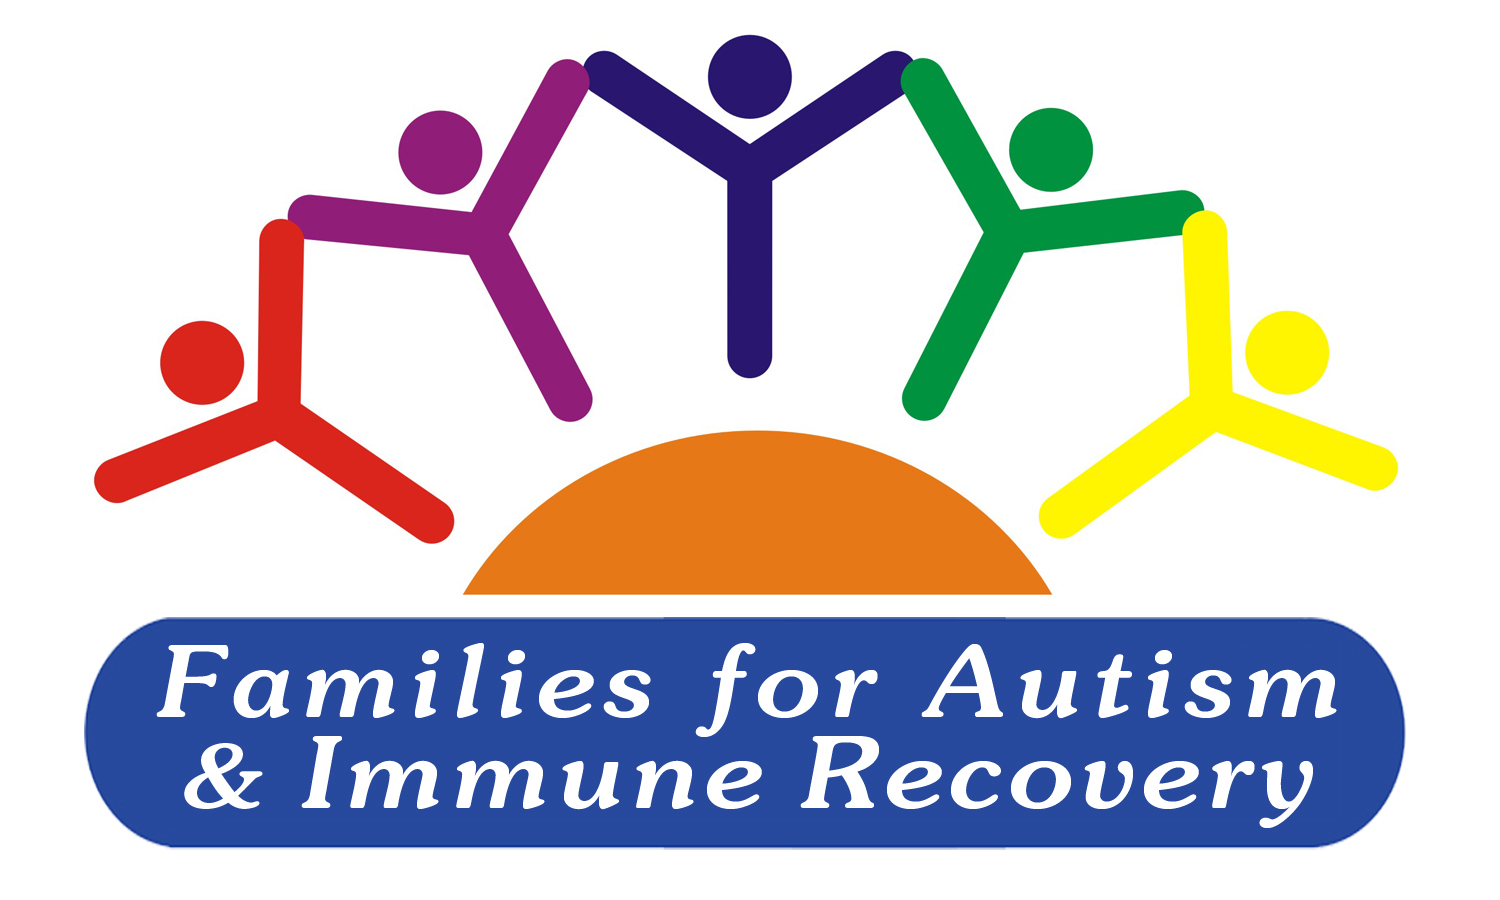 Families for Autism & Immune Recovery